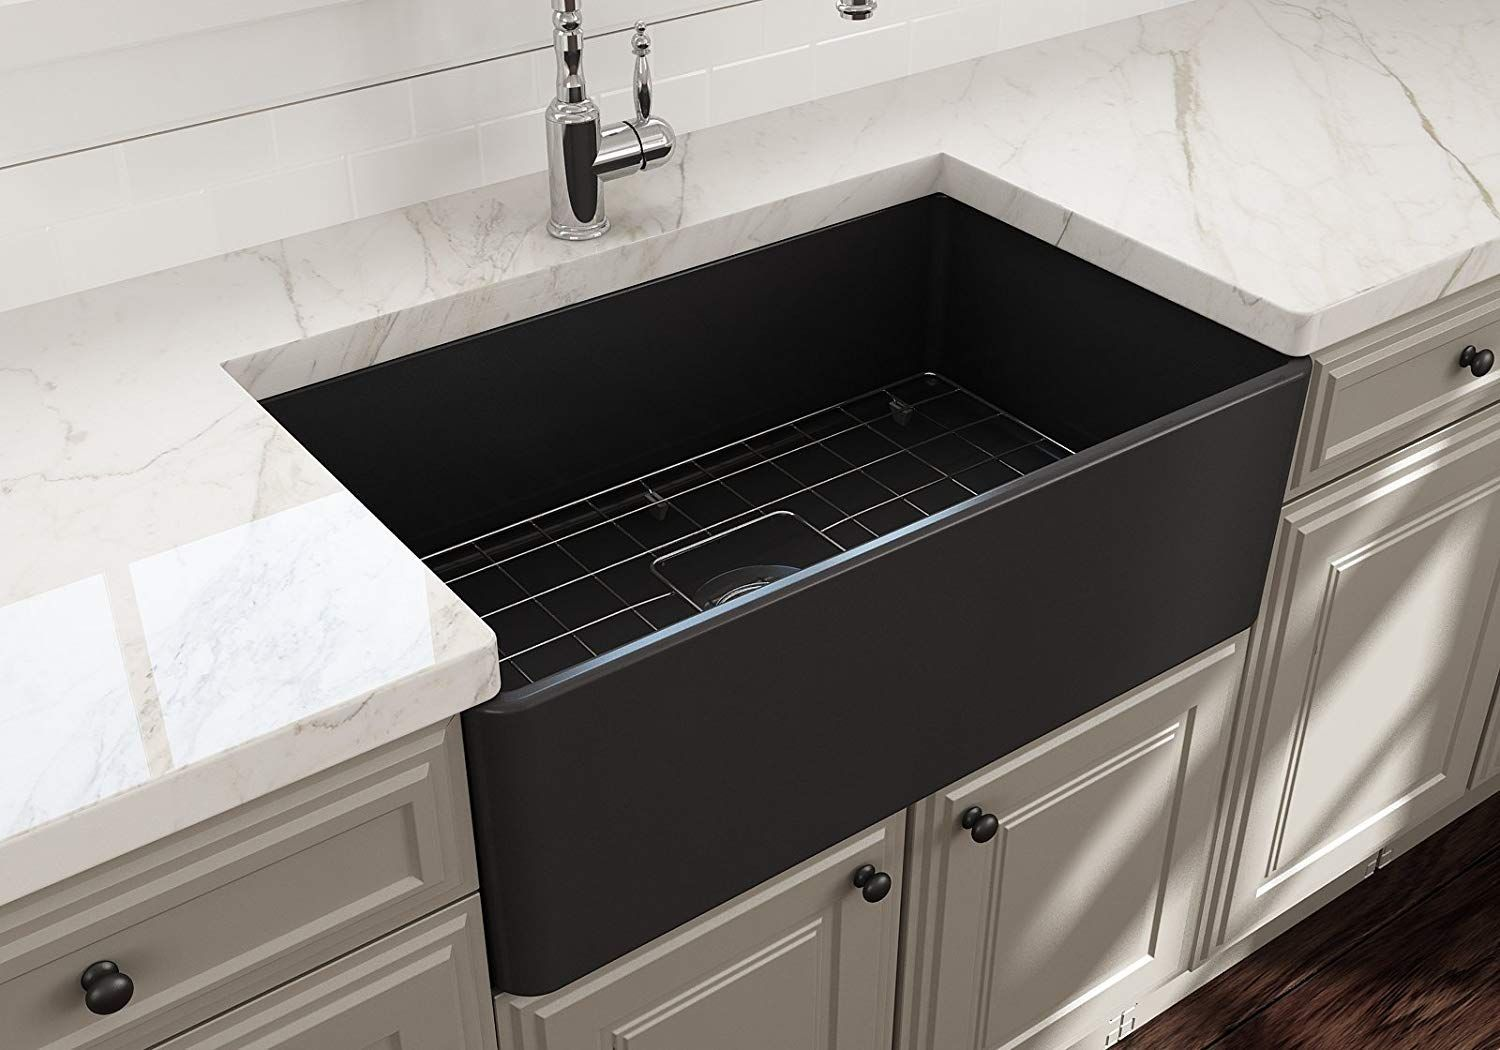 Best Black Farmhouse Sinks We Love Black Apron Front Sinks And All Sorts Of Farmhouse S In 2020 Single Bowl Kitchen Sink Black Farmhouse Sink Double Bowl Kitchen Sink